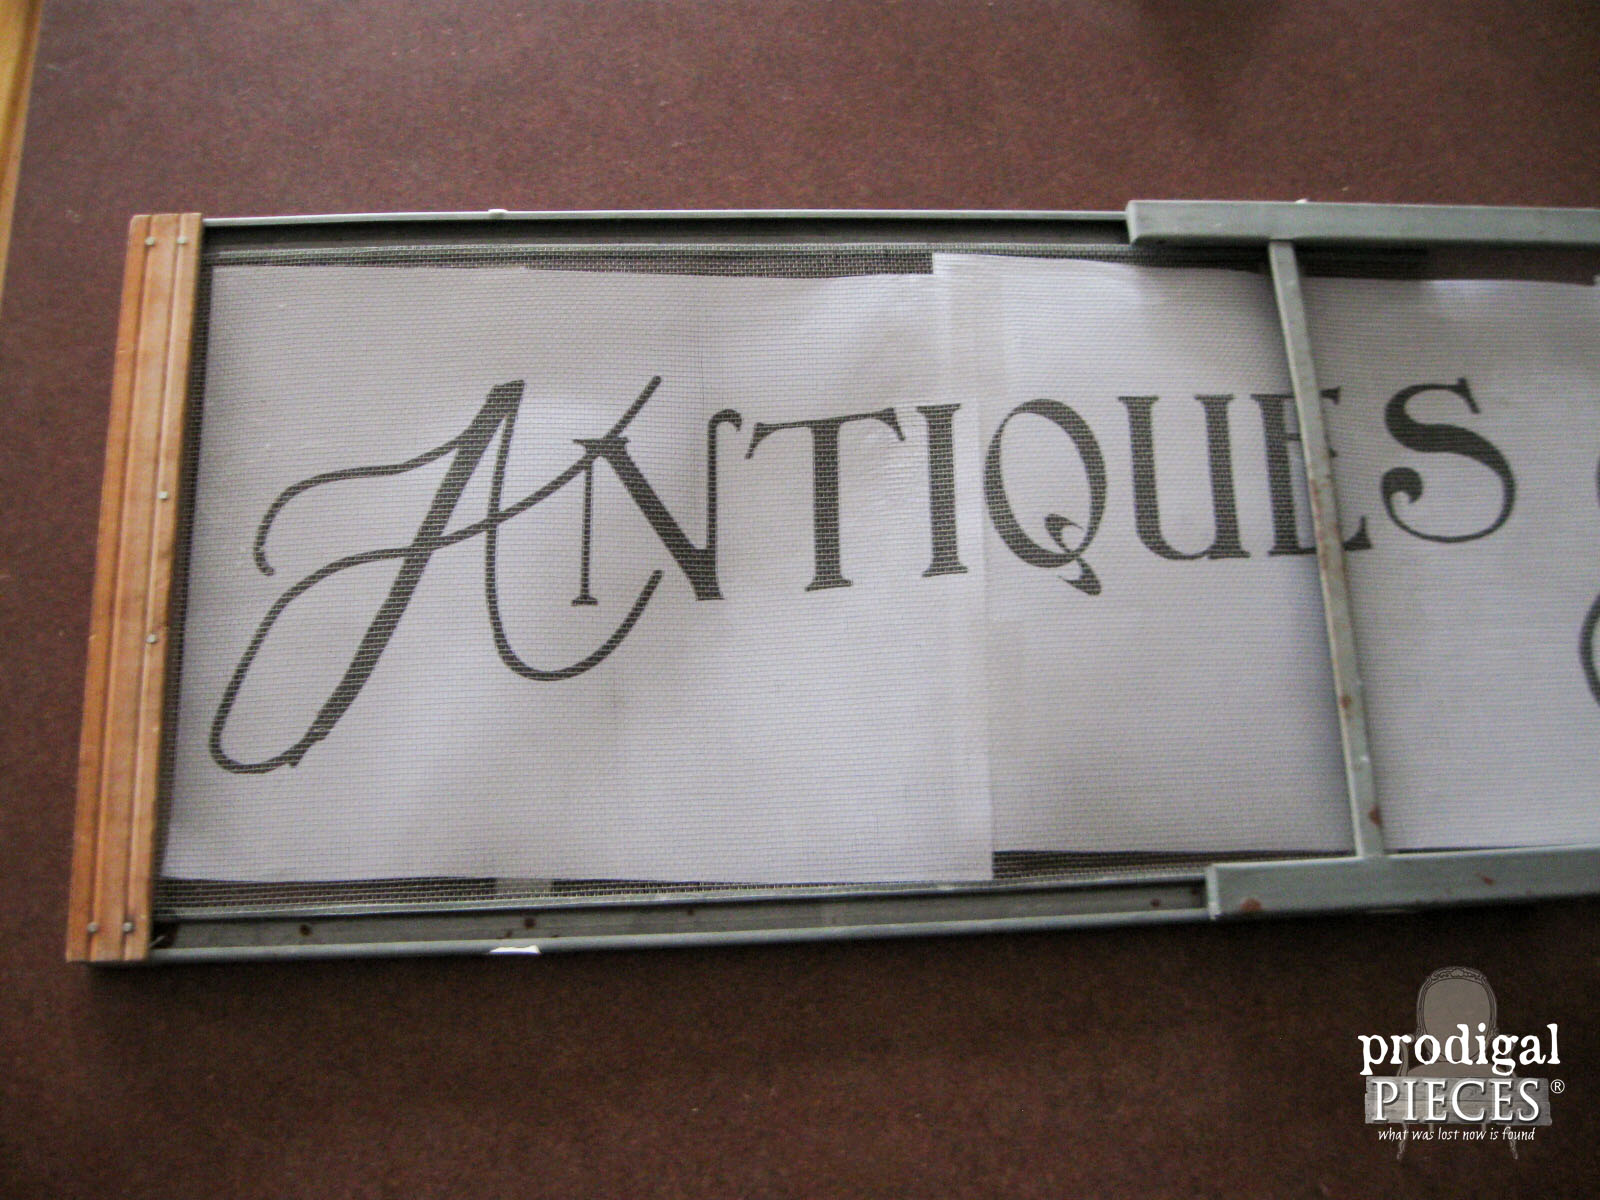 Printed Graphic Layout on Window Screen | Prodigal Pieces | www.prodigalpieces.com